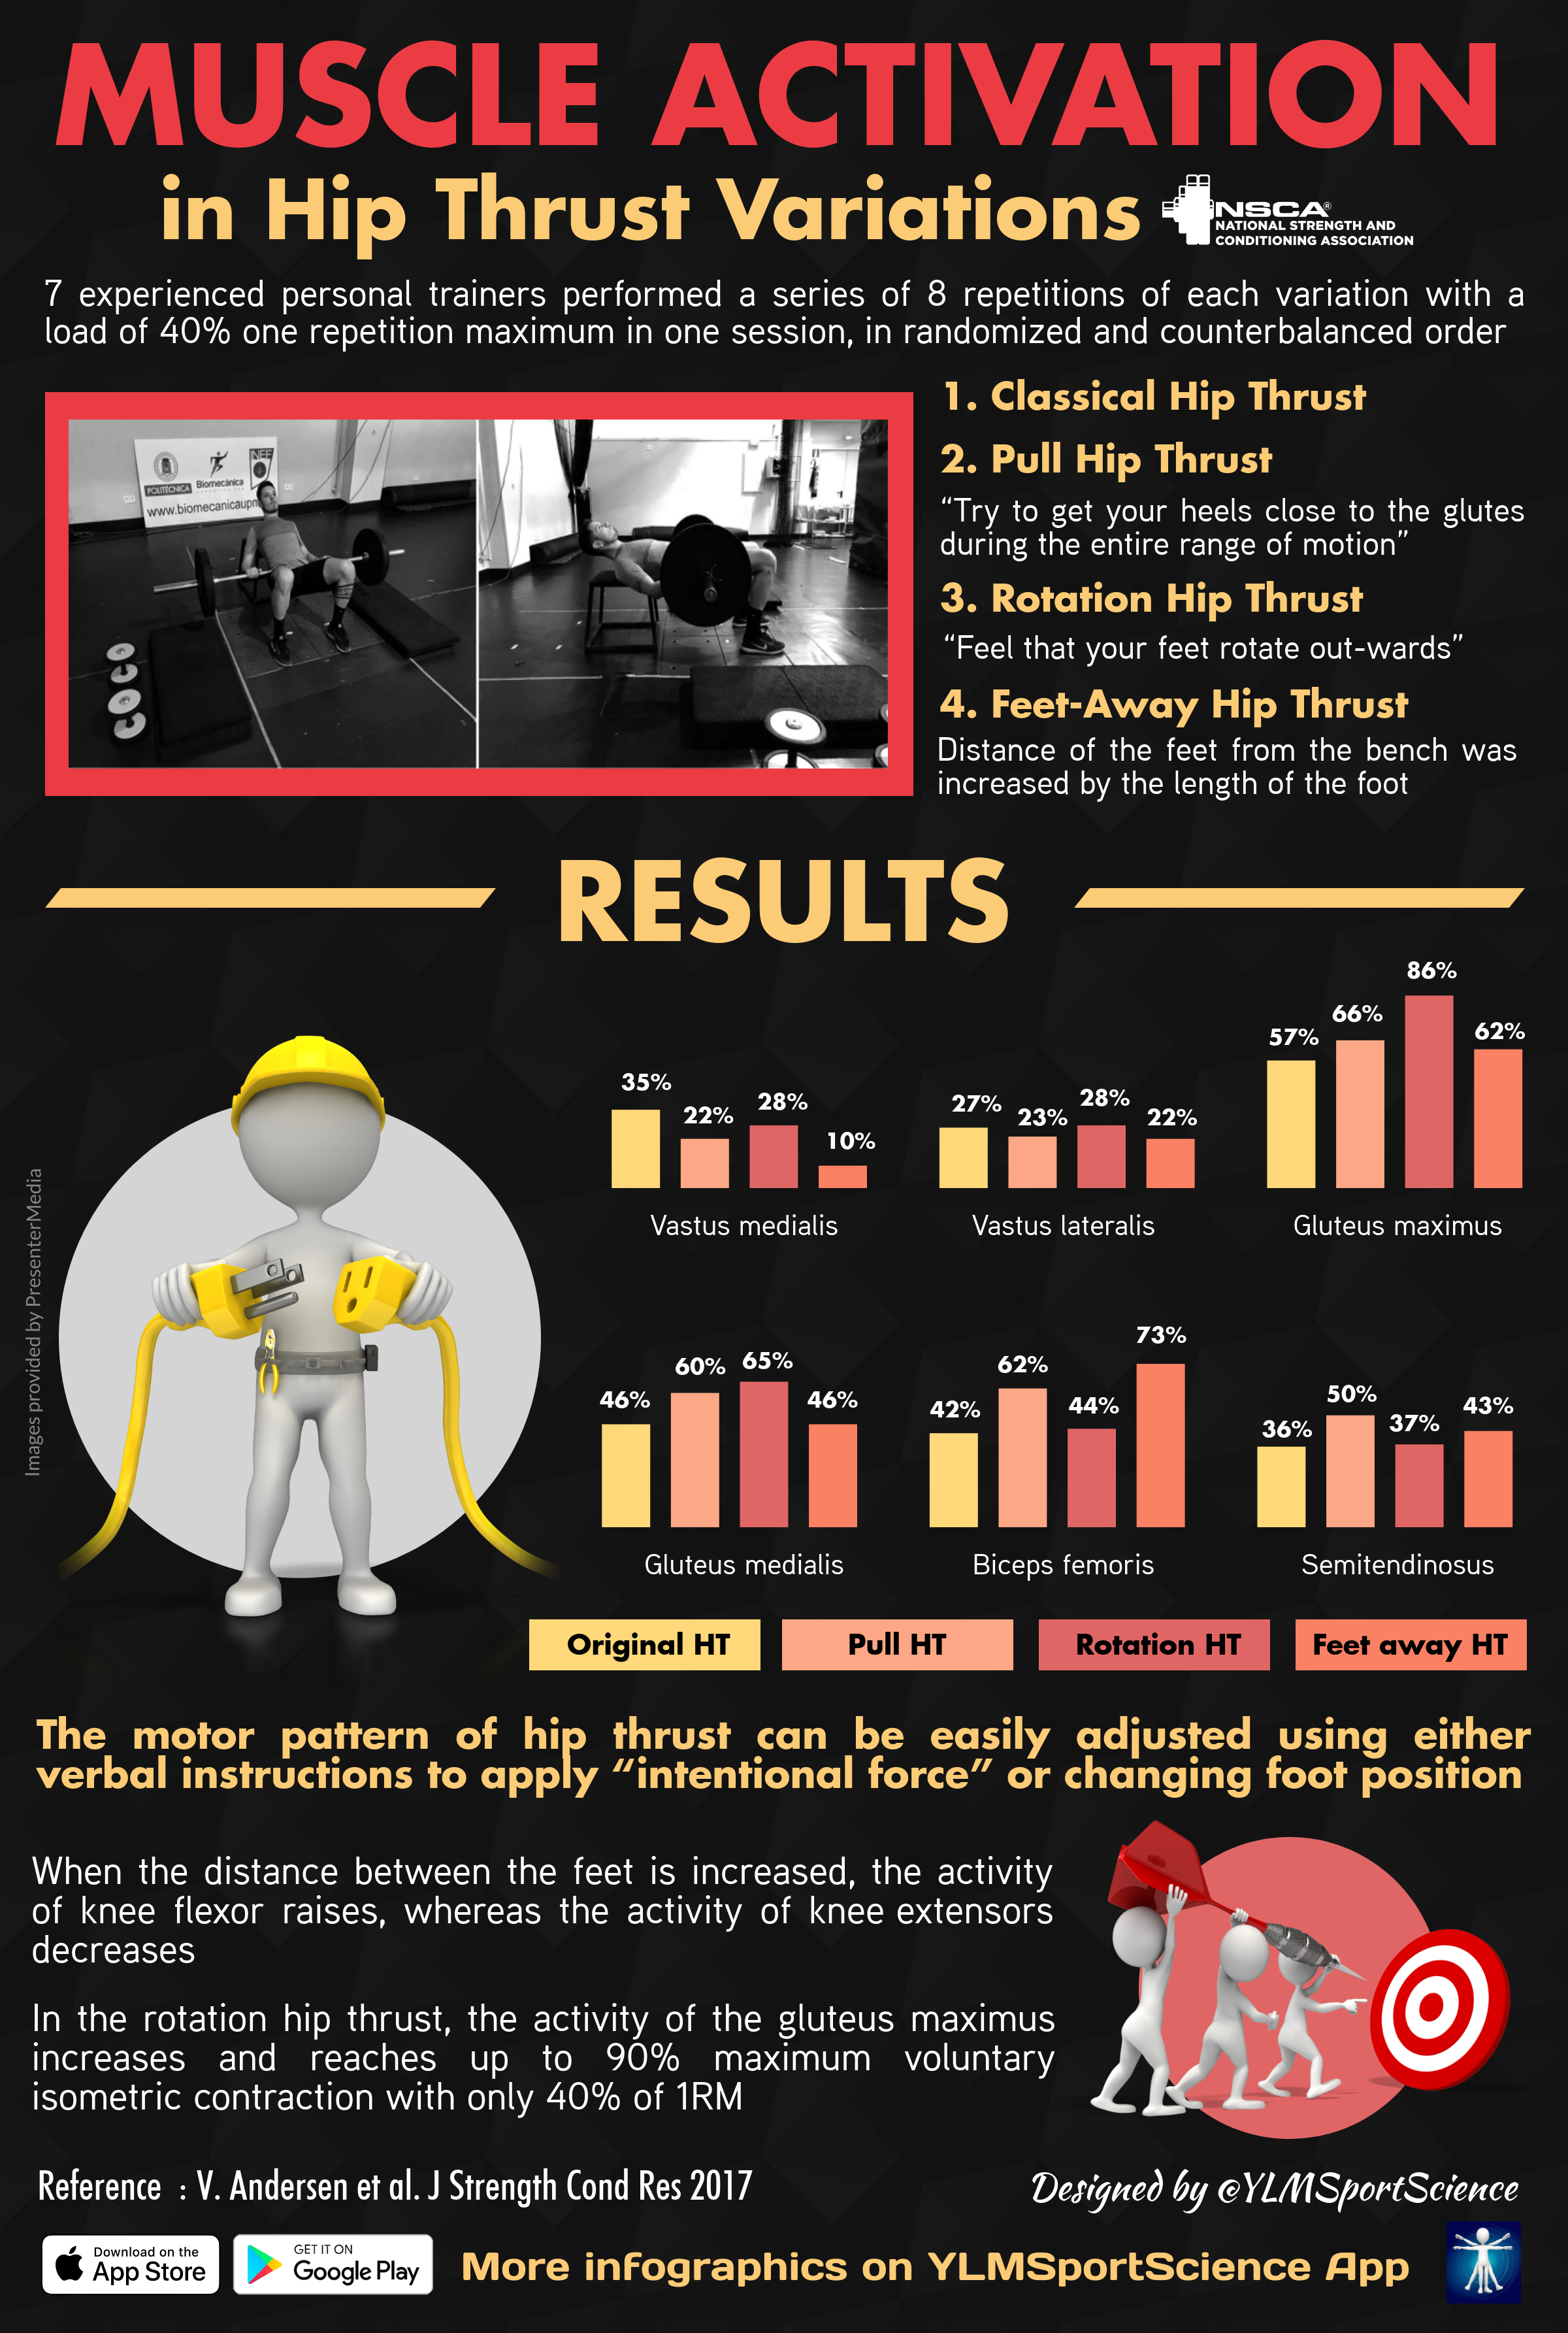 This infographic looks at the percentages of optimal muscle activation in variations of the hip thrust.